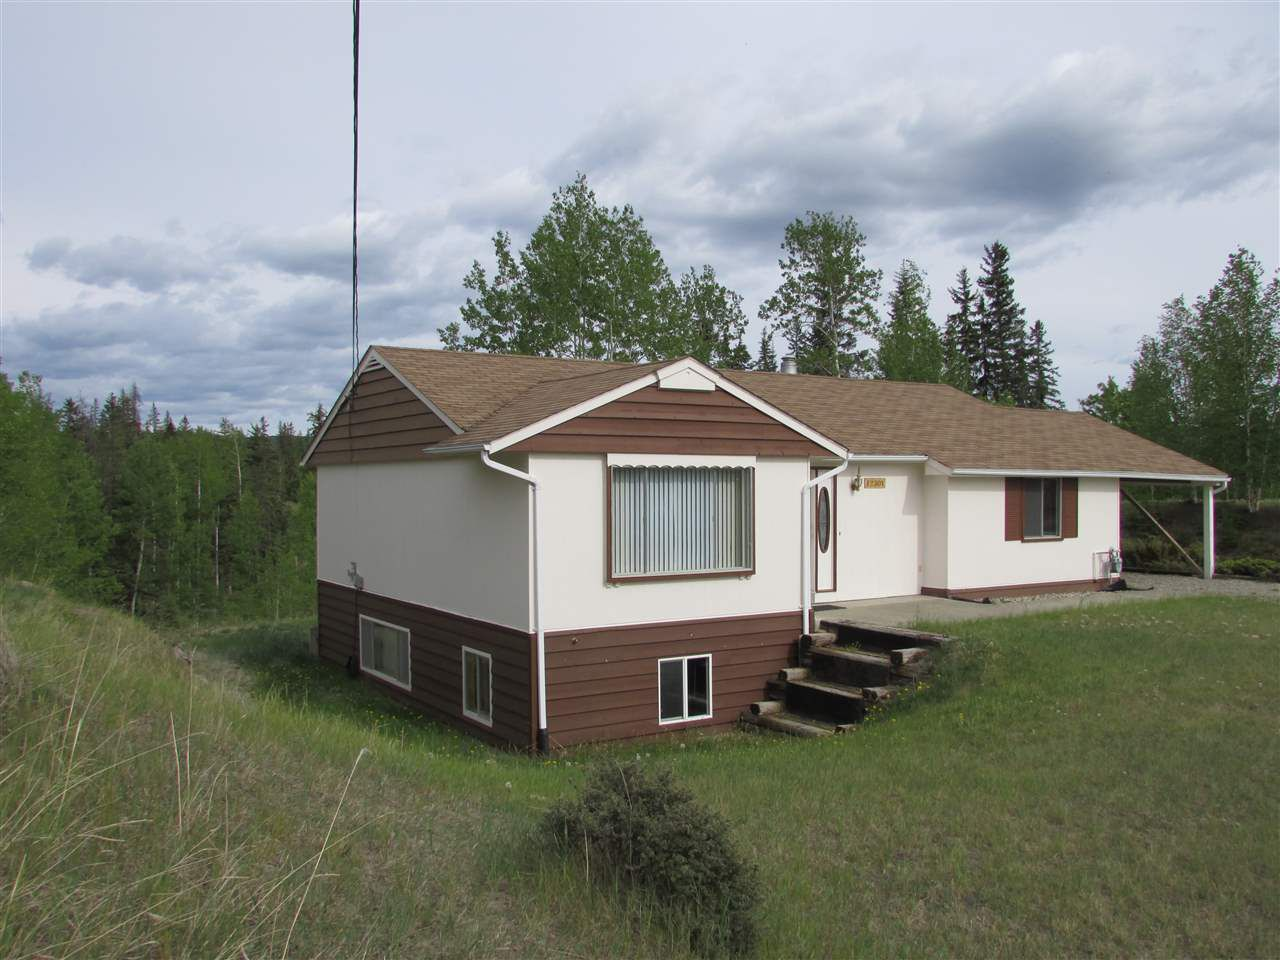 Nicely treed property on the corner with added privacy